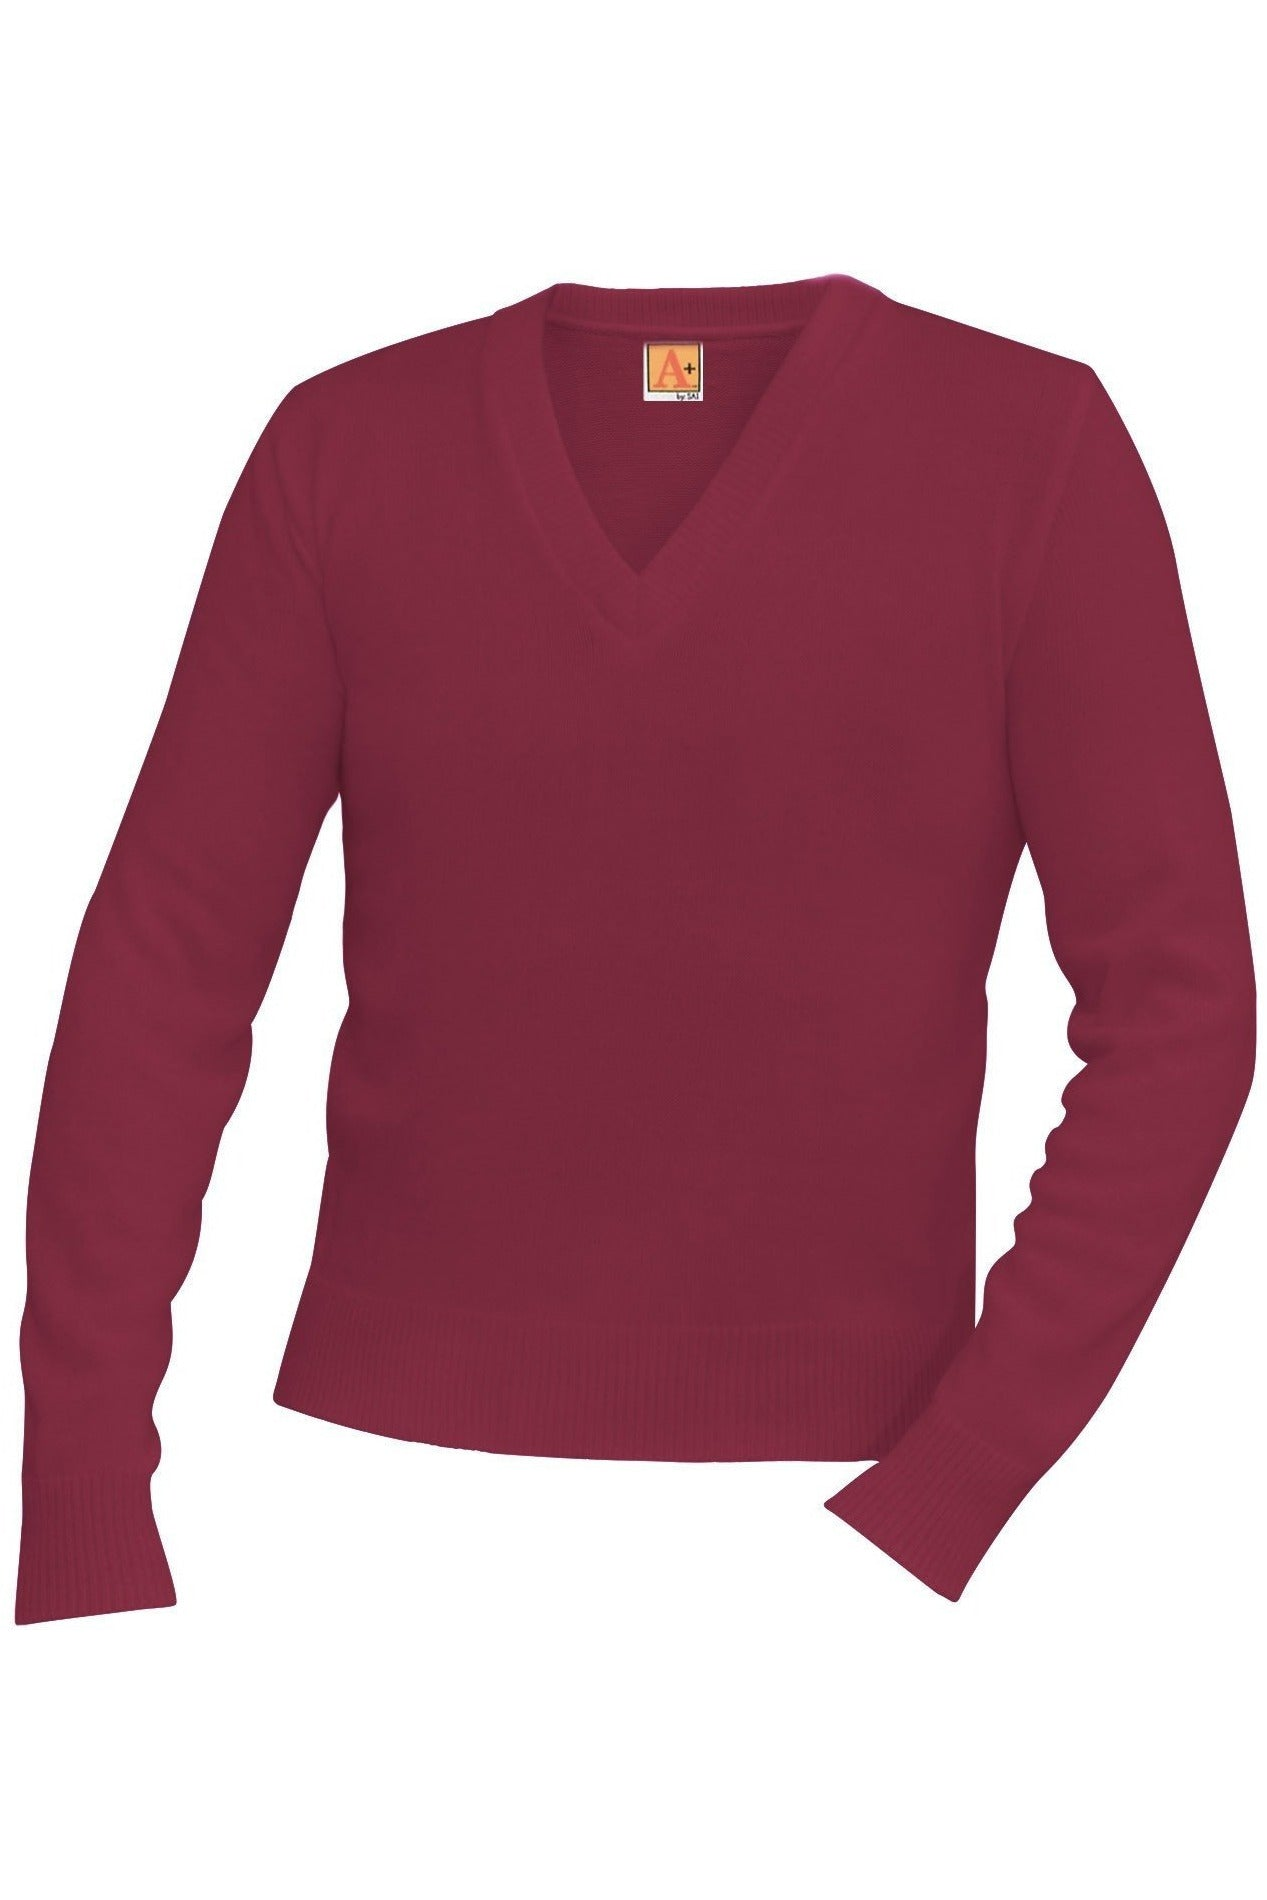 Pullover Sweater - RC Uniforms